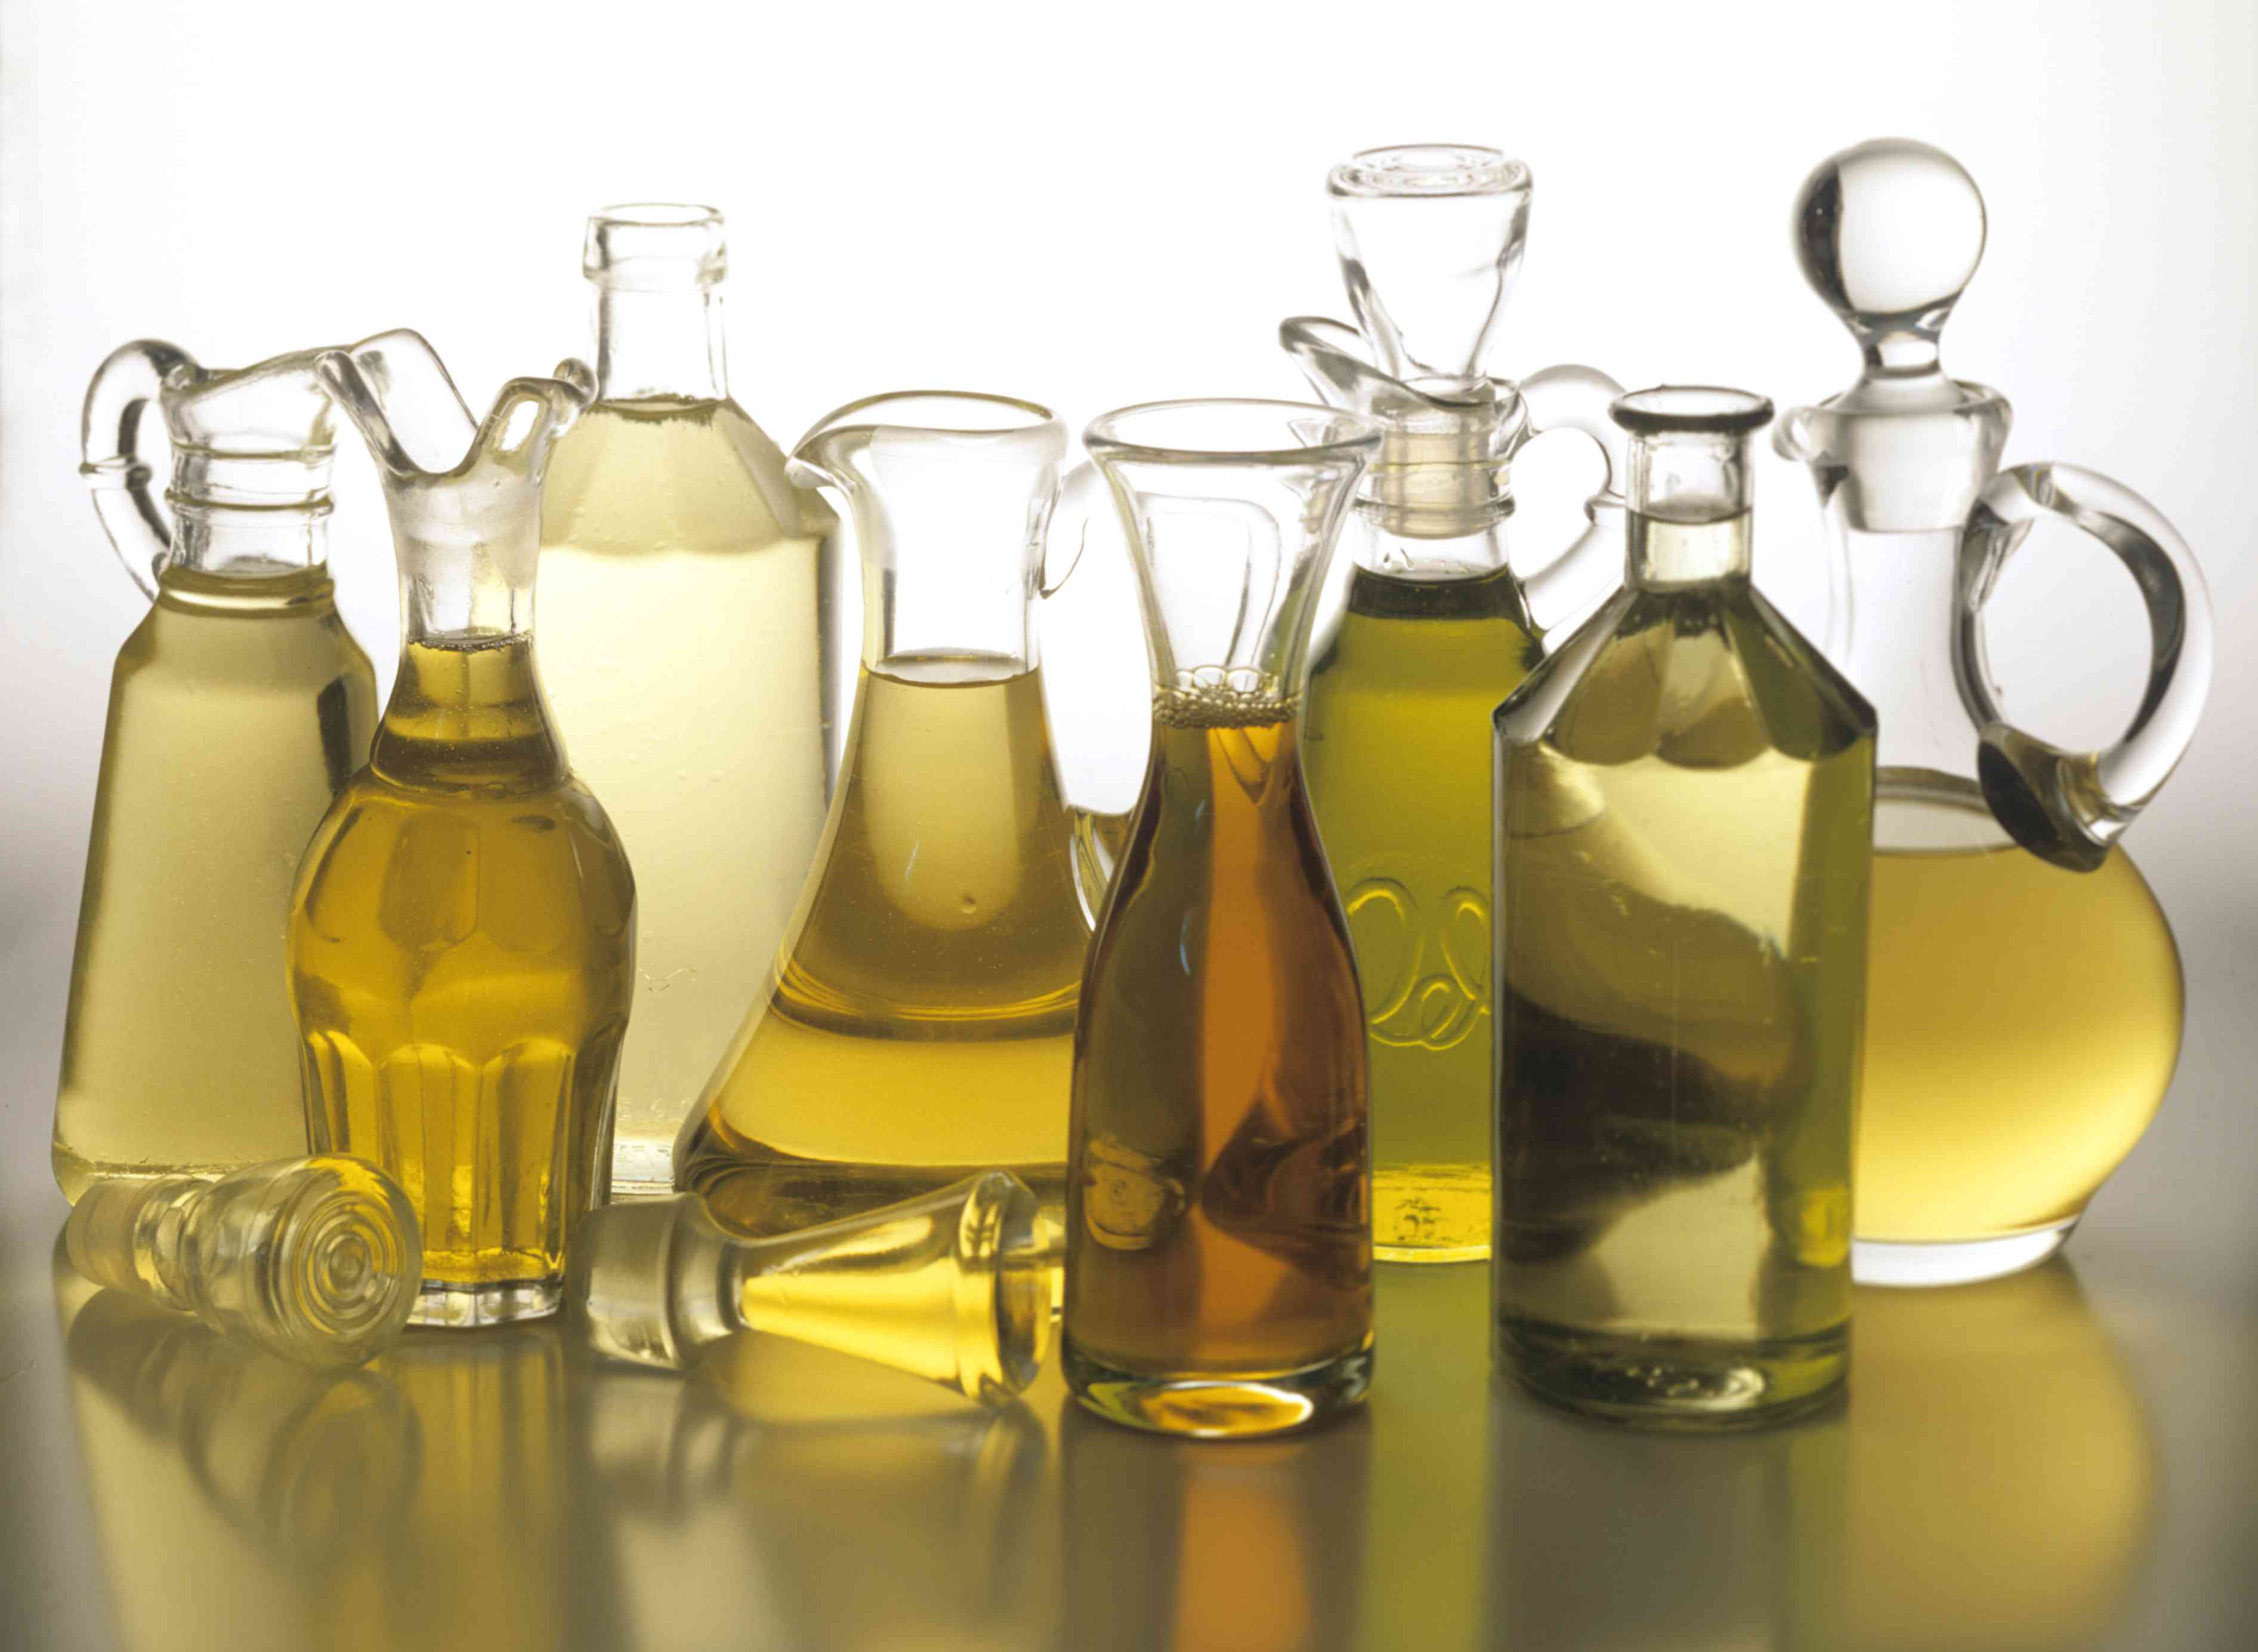 Various cooking oils in glass bottles